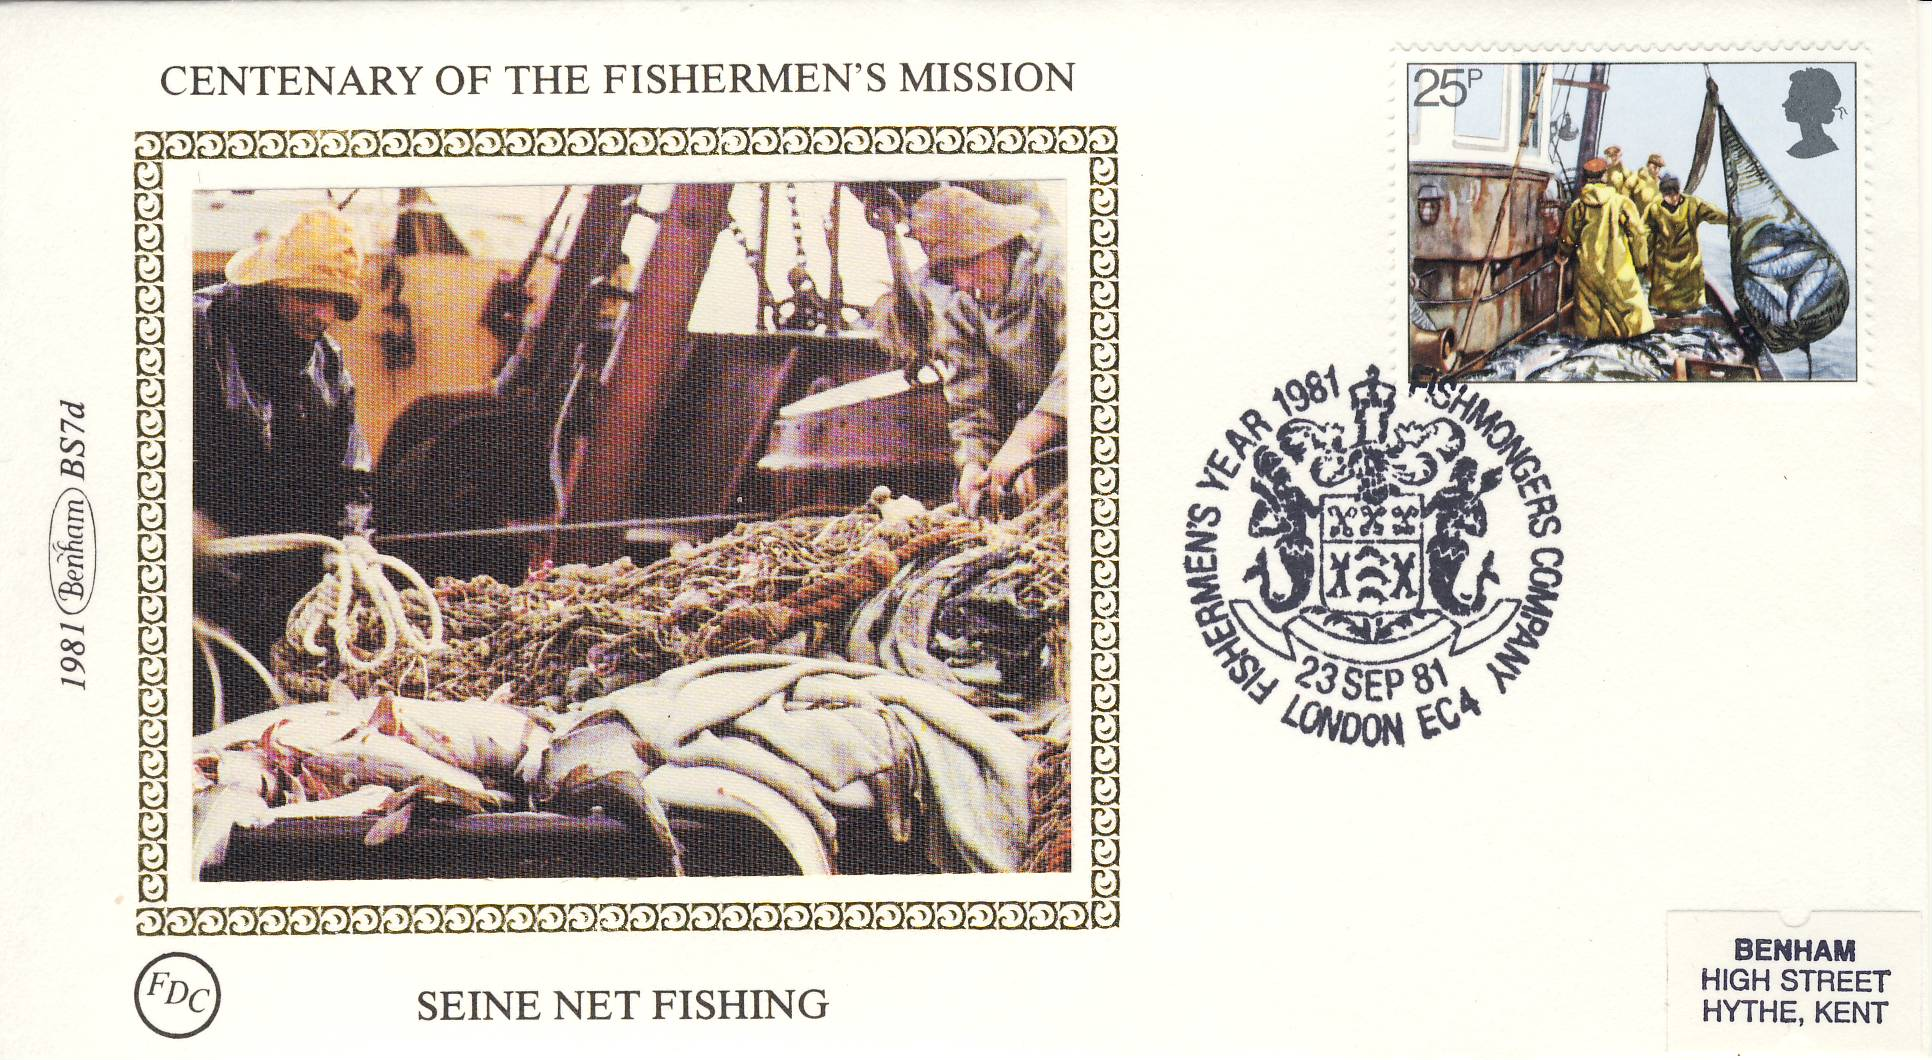 1981 BS7d Fishermen's Mission SEINE NET Benham Sm Silk Cover refF484Postmarked Fishmongers Company London EC4. Very good condition. Unsealed with insert card. Ideal for gift